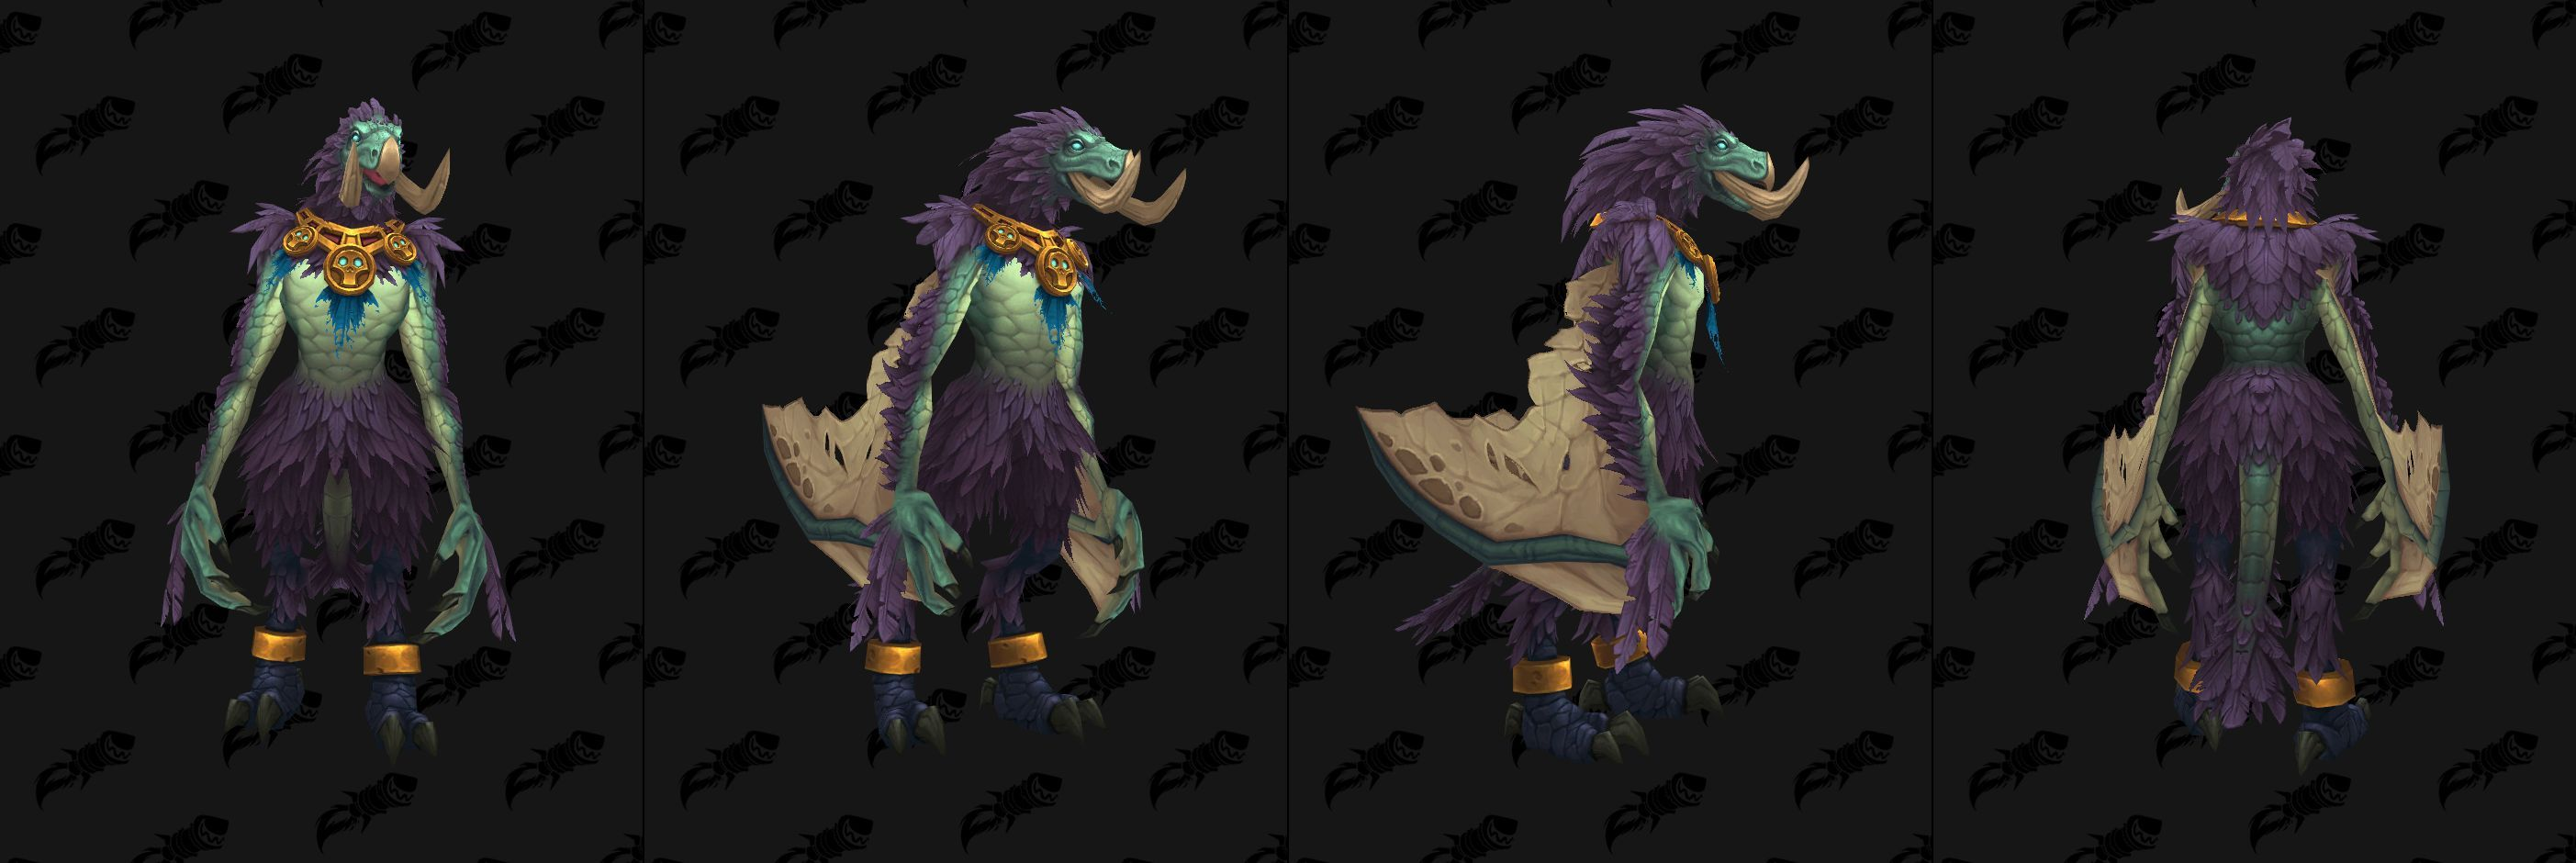 Zandalari troll druid forms moonkin and bear forms wow zandalari troll druid forms moonkin and bear forms nvjuhfo Choice Image